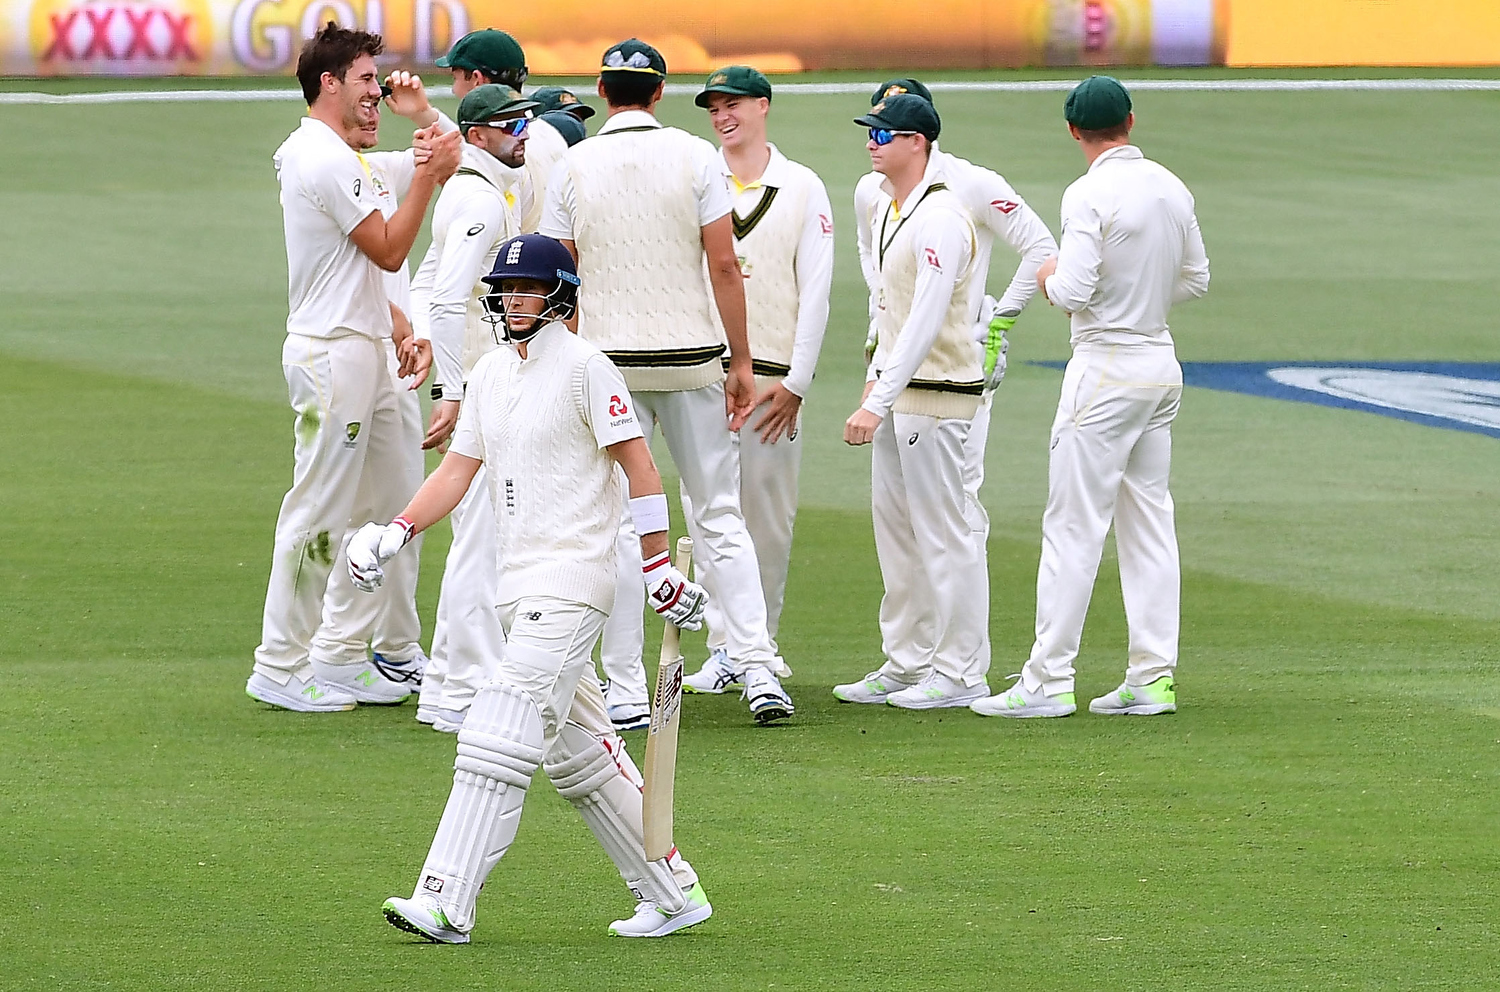 Australia celebrates after taking the wicket of Joe Root Pic: Mark Brake - CA/Cricket Australia/Getty Images